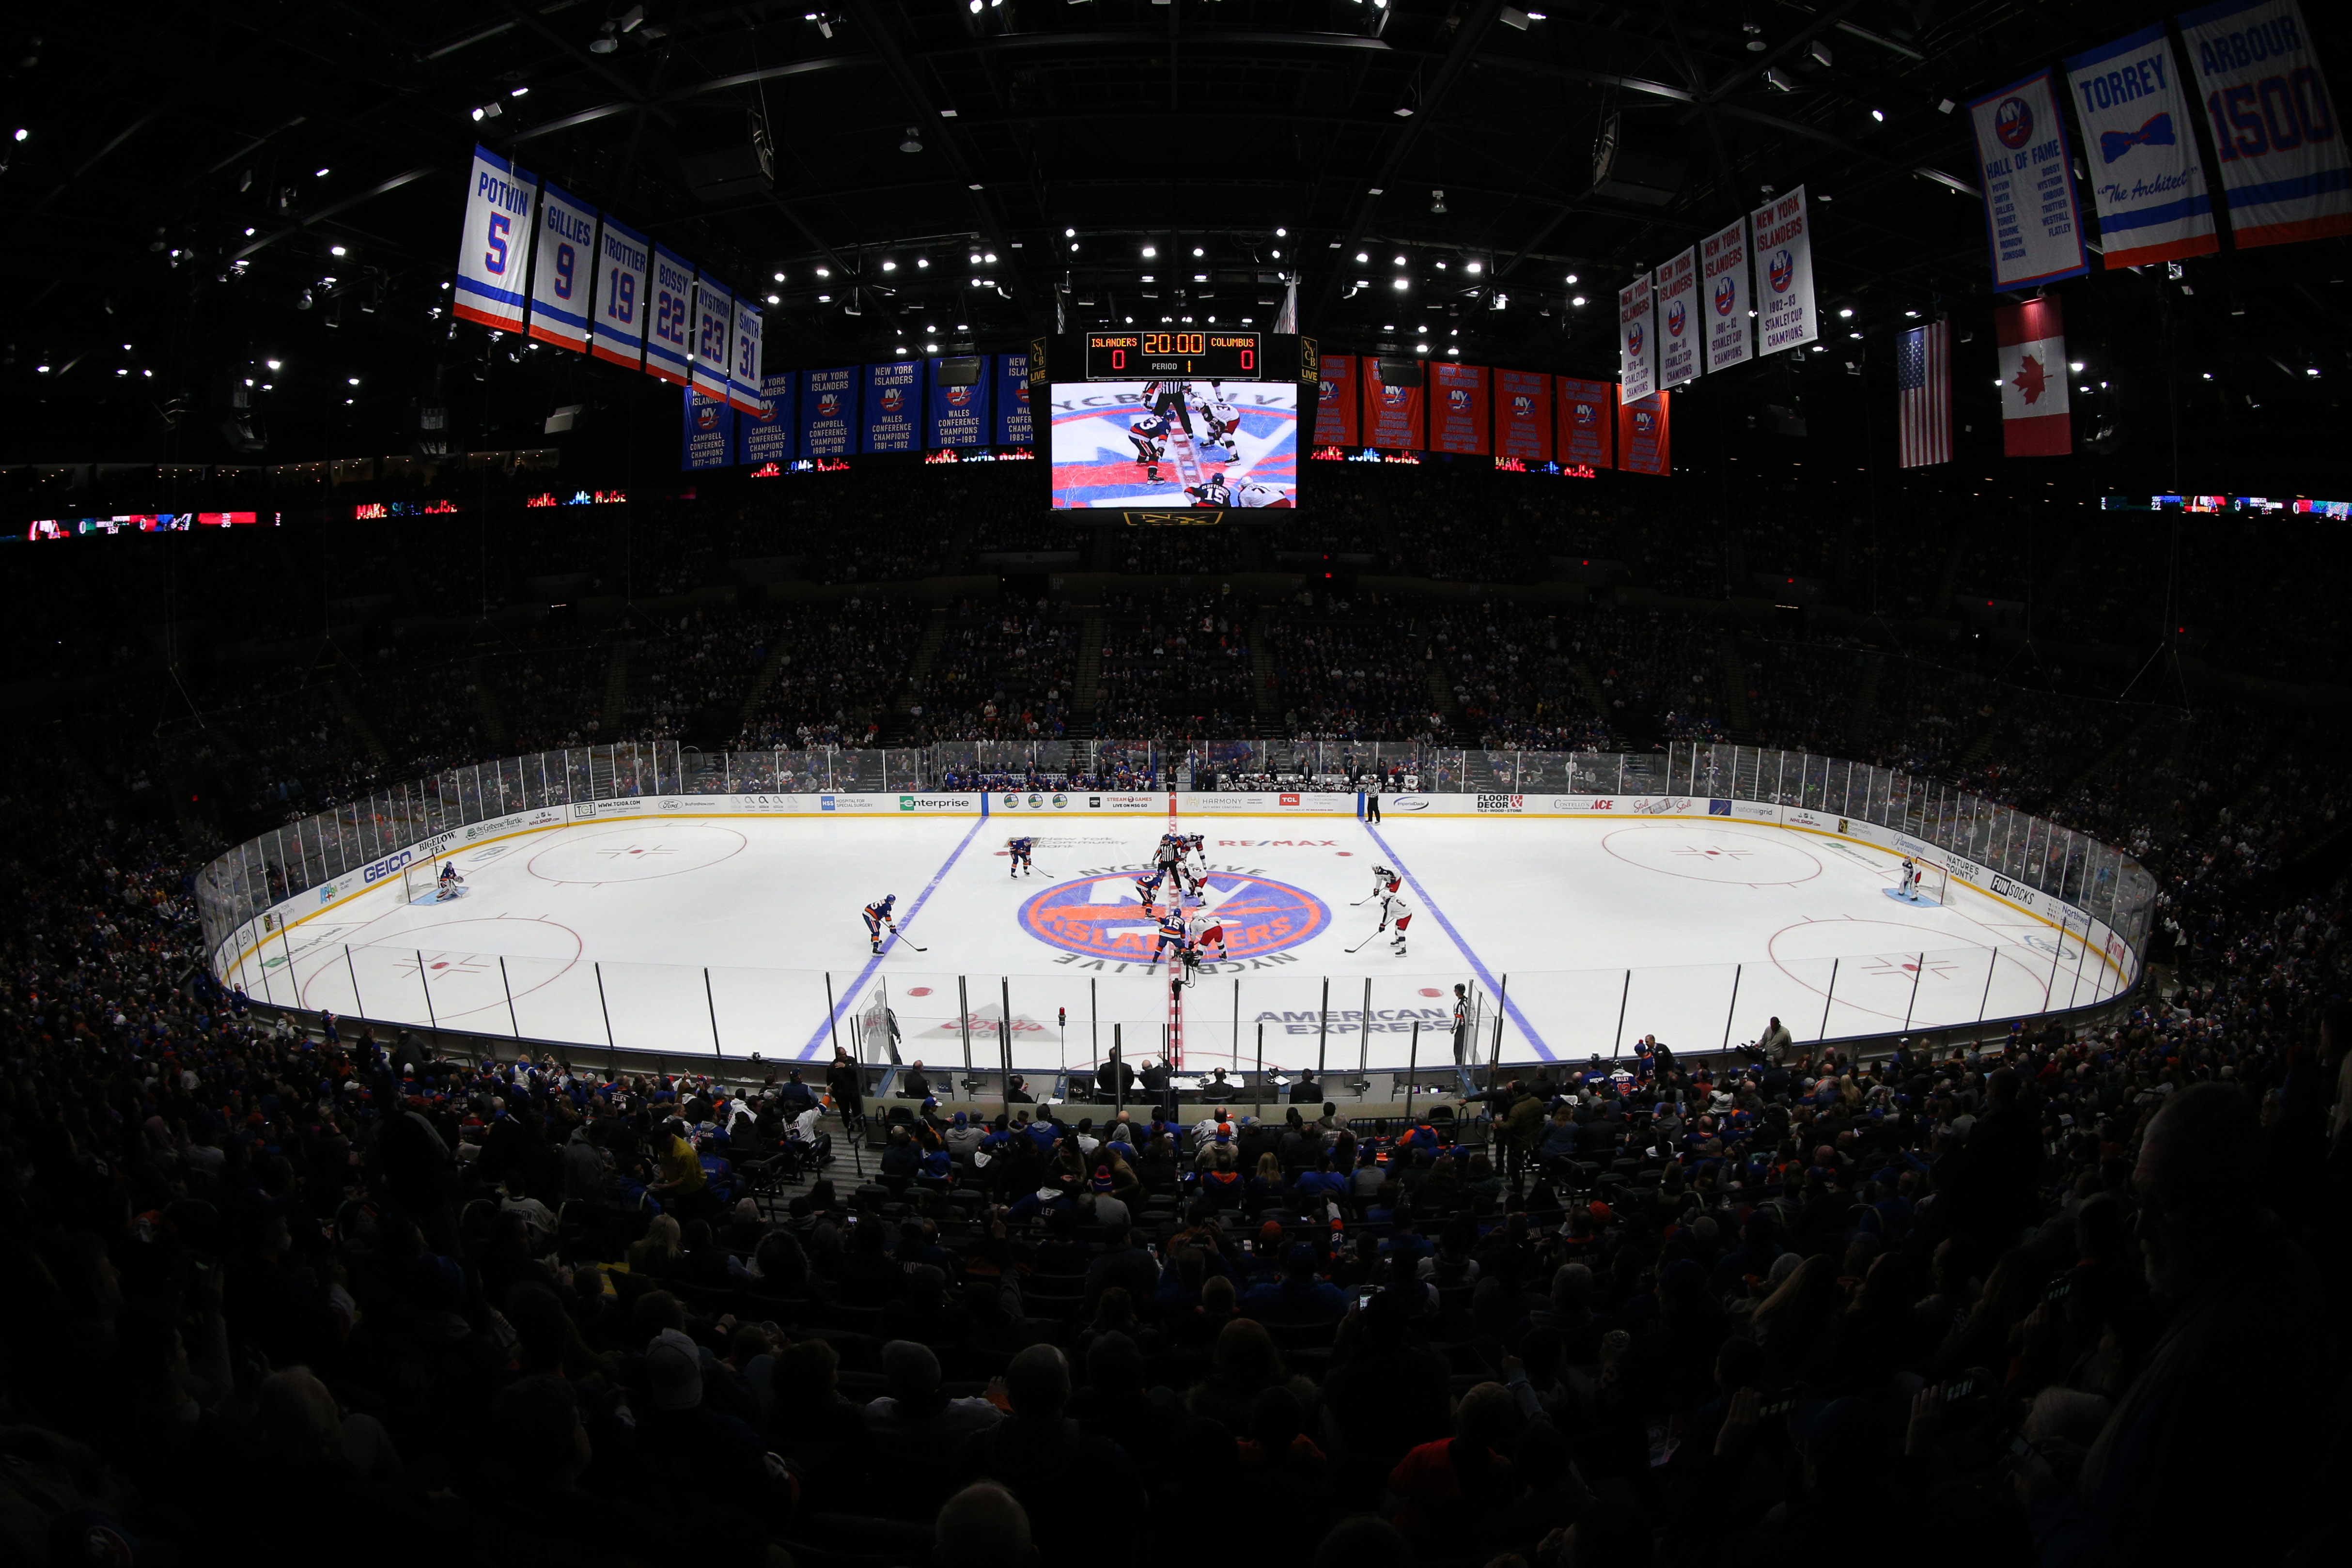 Dec 1, 2018; Uniondale, NY, USA; General view of the opening puck drop between the New York Islanders and the Columbus Blue Jackets during the first period at Nassau Veterans Memorial Coliseum. Mandatory Credit: Brad Penner-USA TODAY Sports